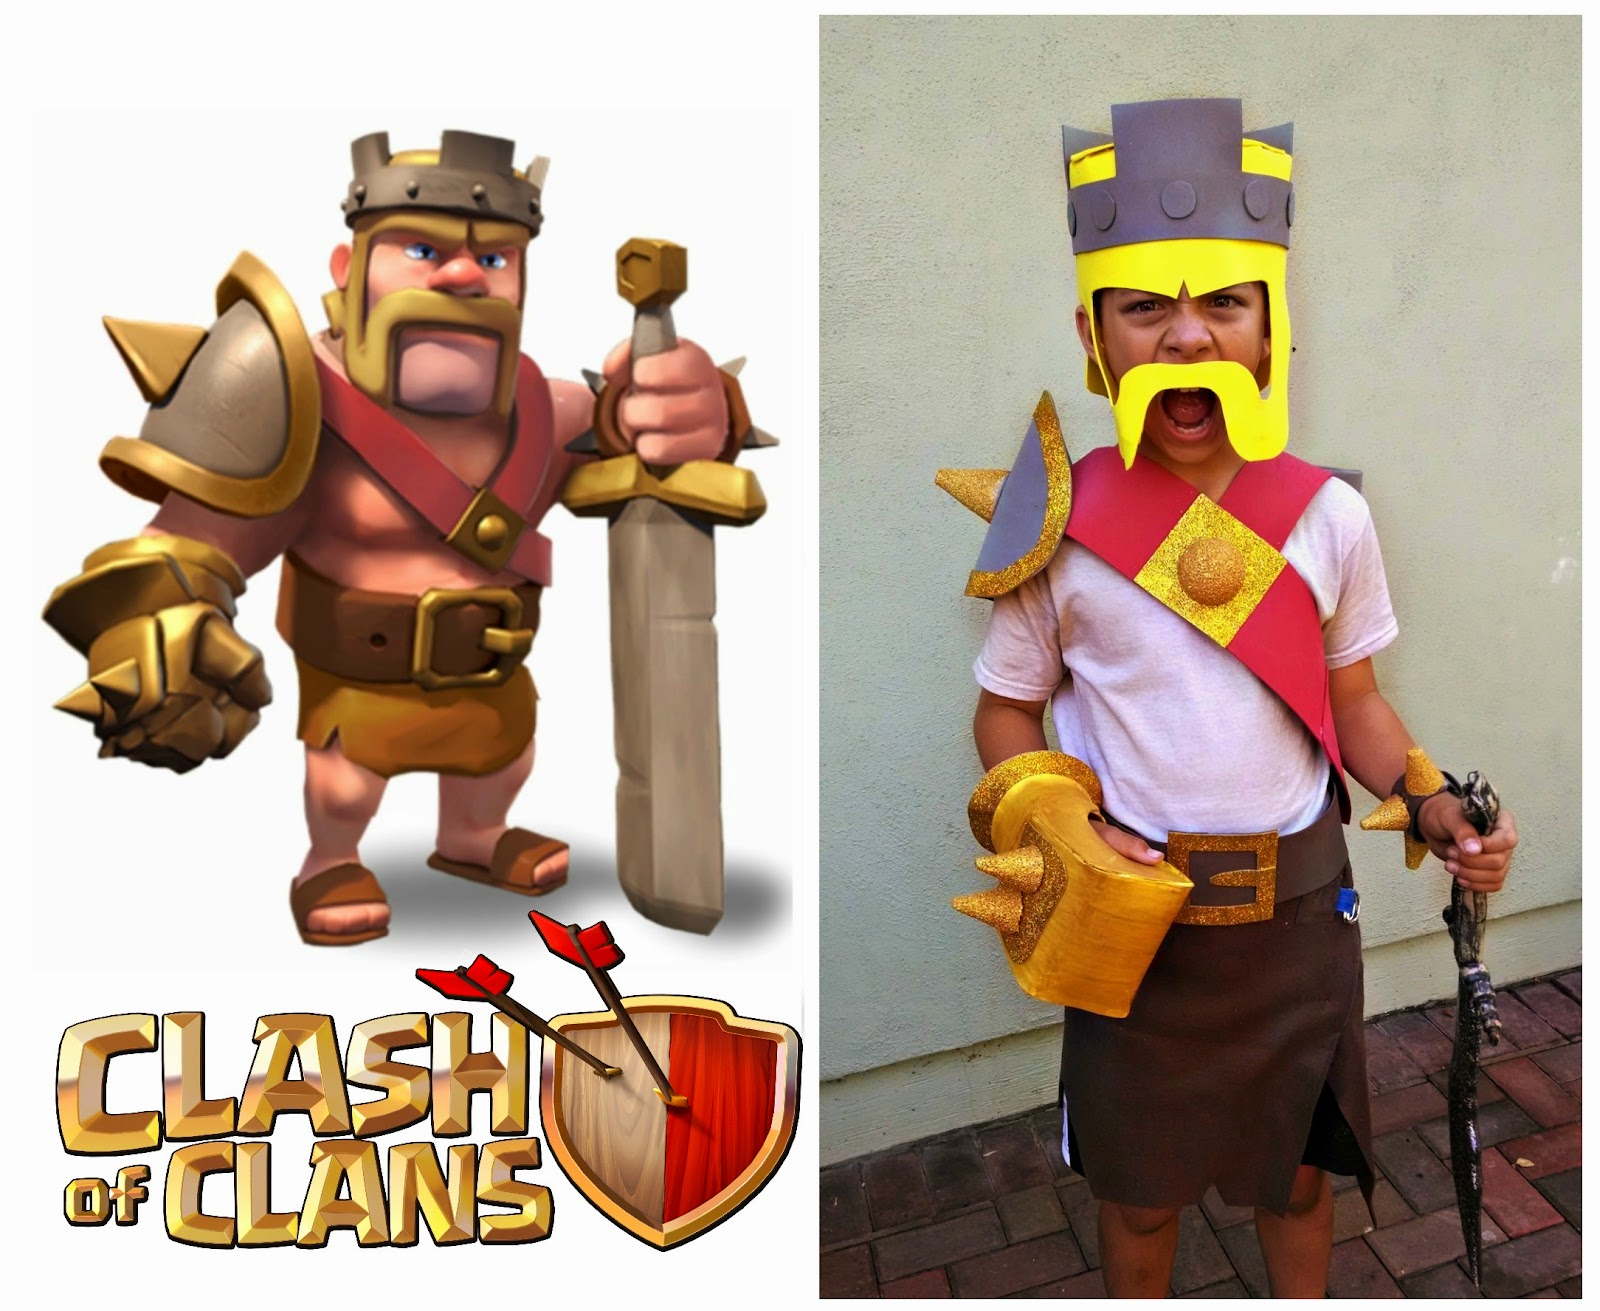 Halloween Costume Watch 2014: Clash of Clans Barbarian King